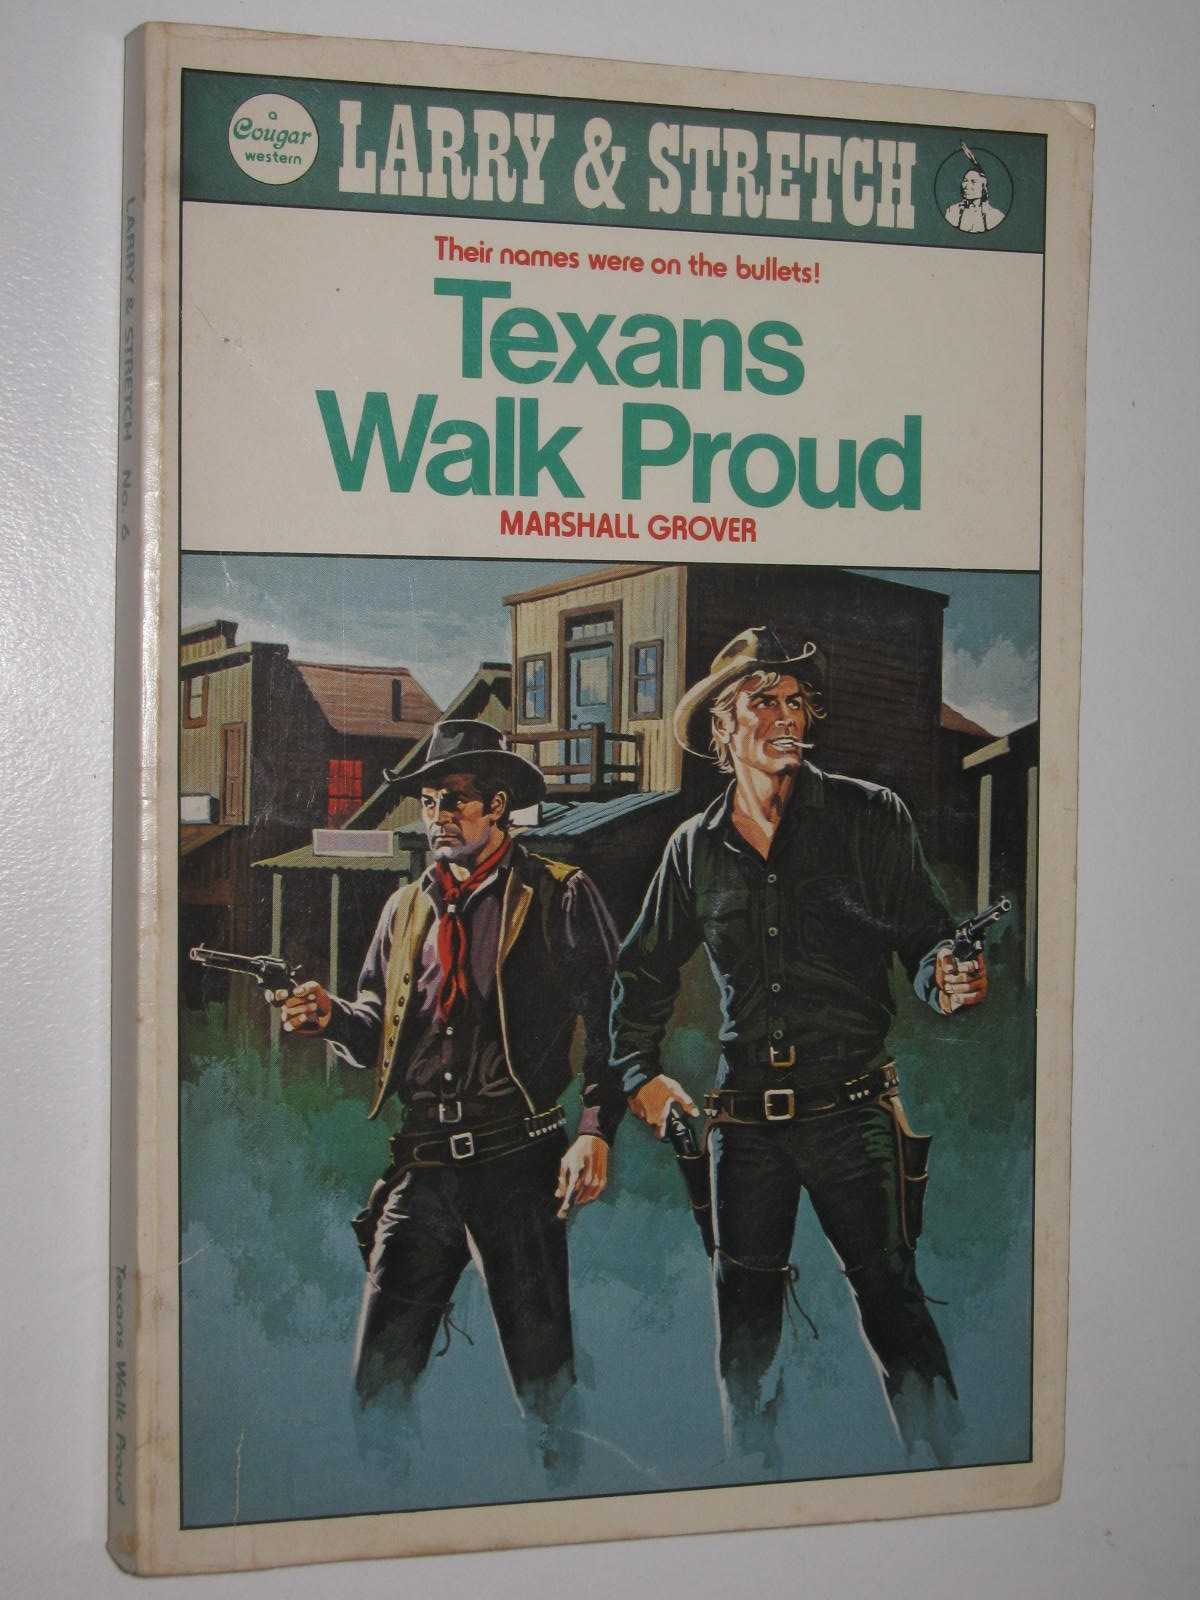 Image for Texans Walk Proud - Larry and Stretch [Cougar Western] Series #6